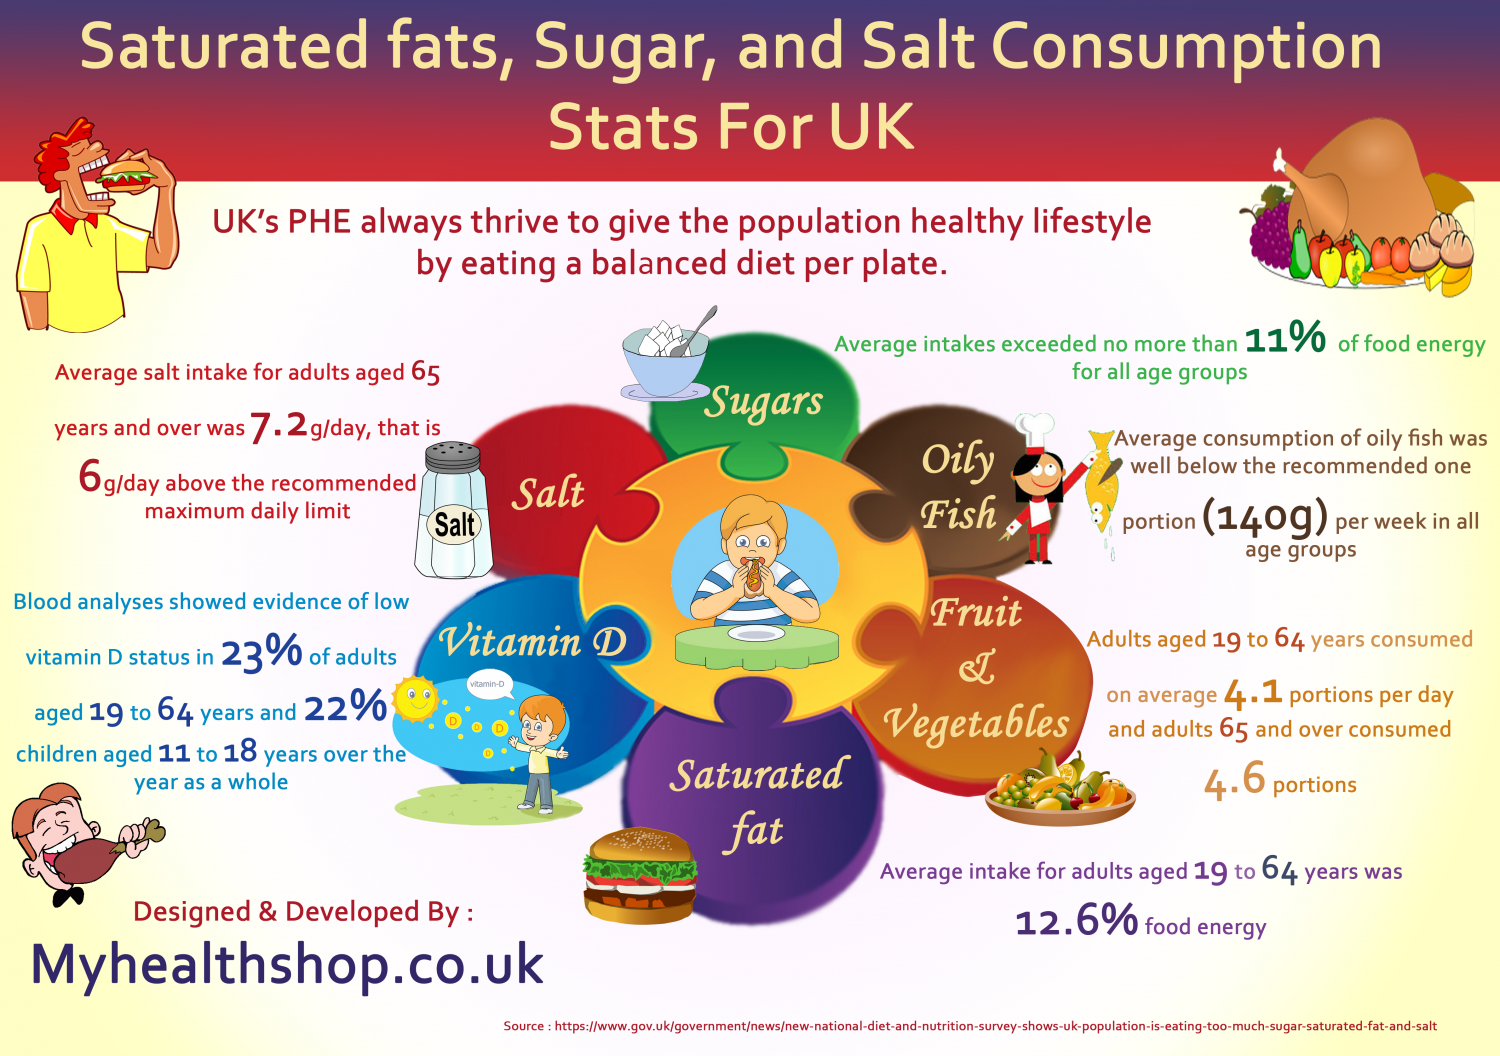 Saturated fats, Sugar, and Salt Consumption  Stats For UK Infographic